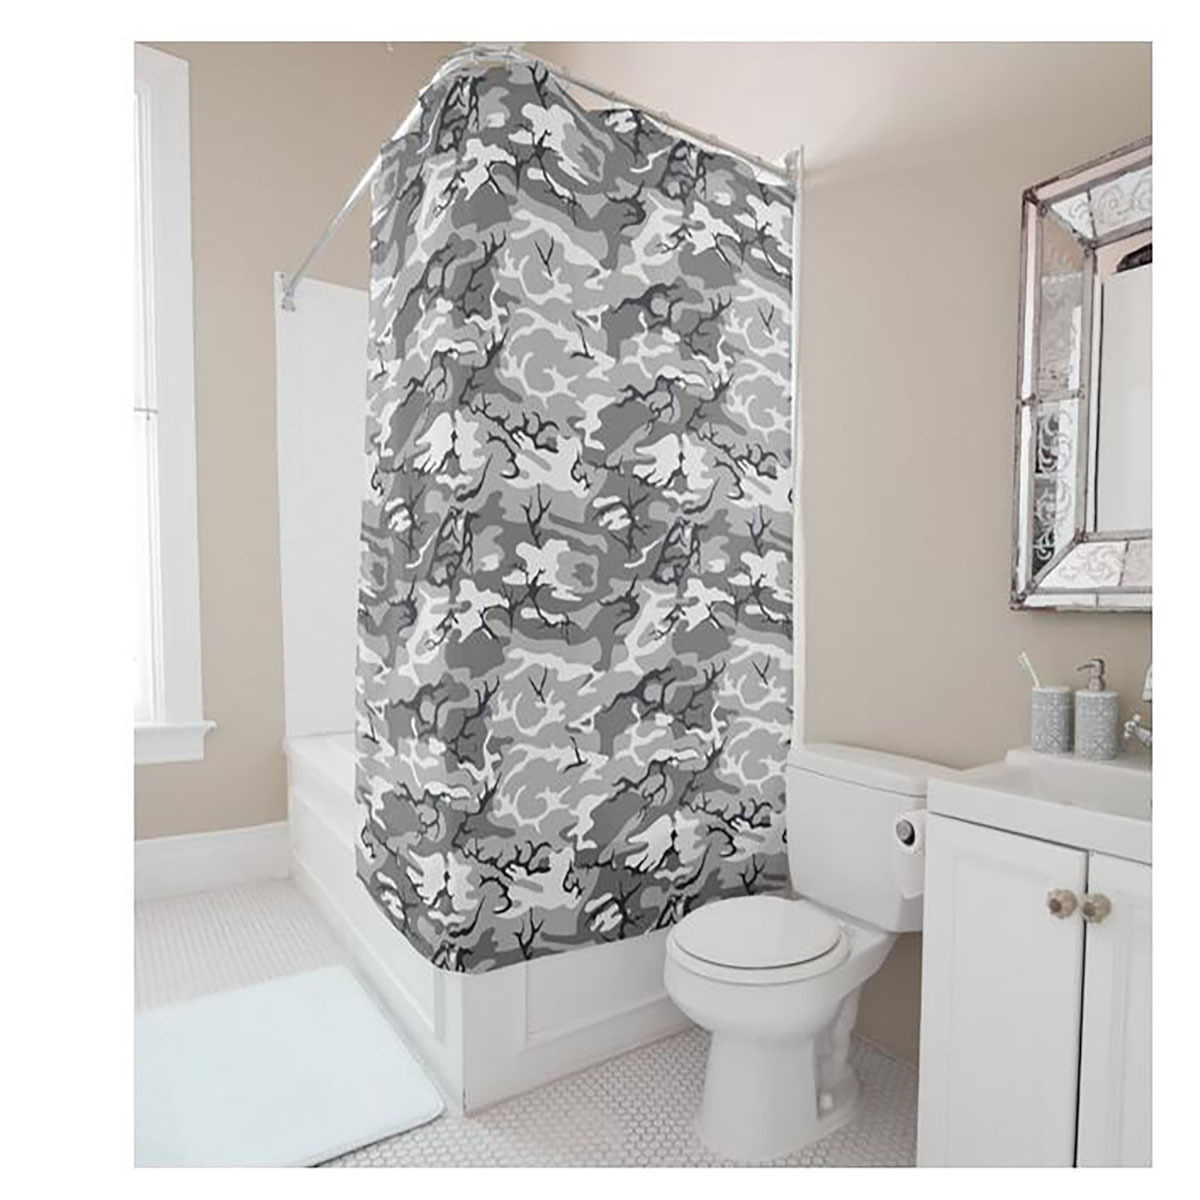 popular camouflage curtainsbuy cheap camouflage curtains lots, Home decor